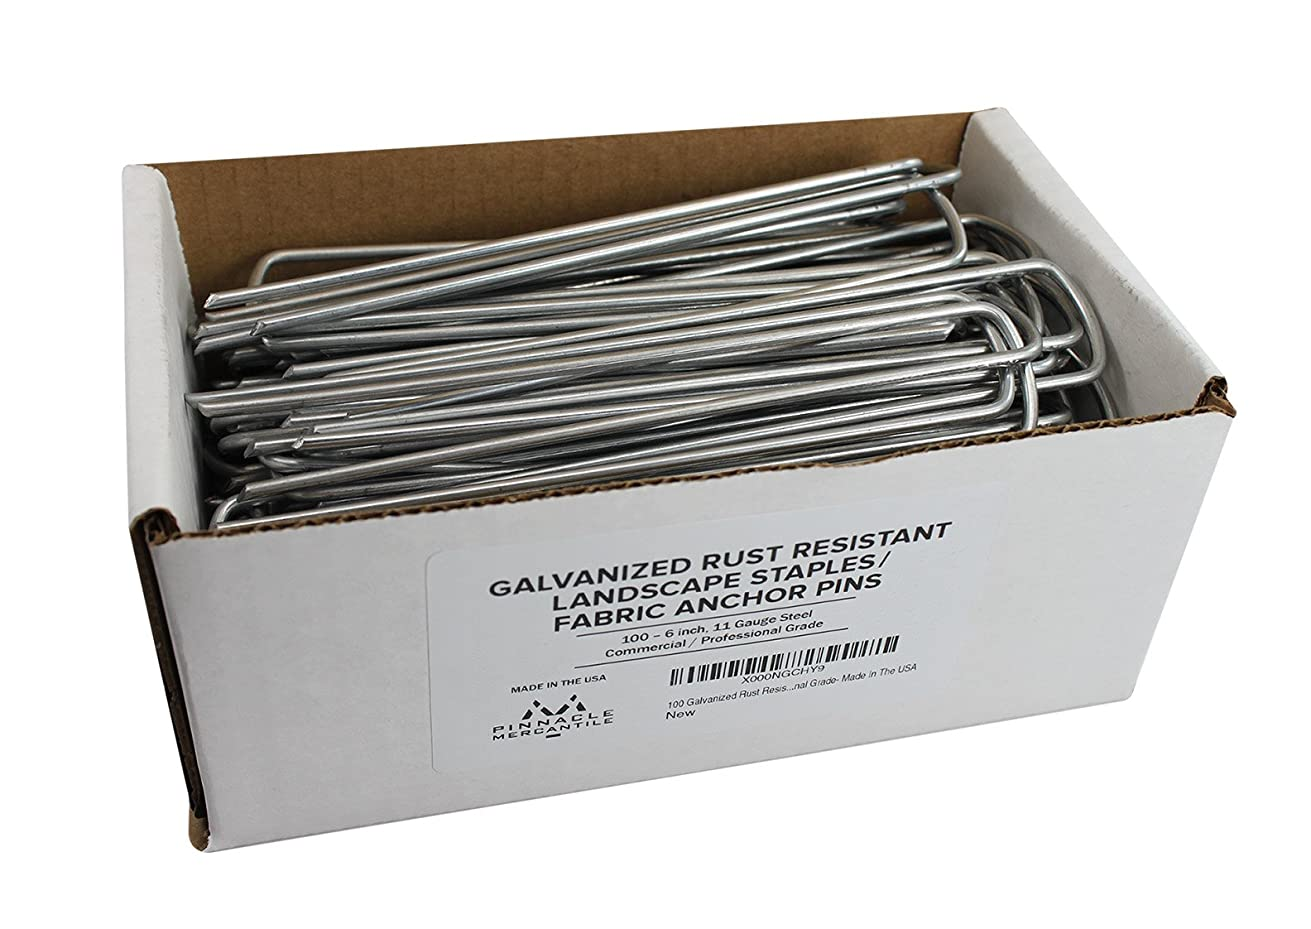 Pinnacle Mercantile 6inch 100 Galvanized Garden Landscape Staples Fabric Anchor Pins Anti Rust 6 inch Strong 11 Gauge Steel